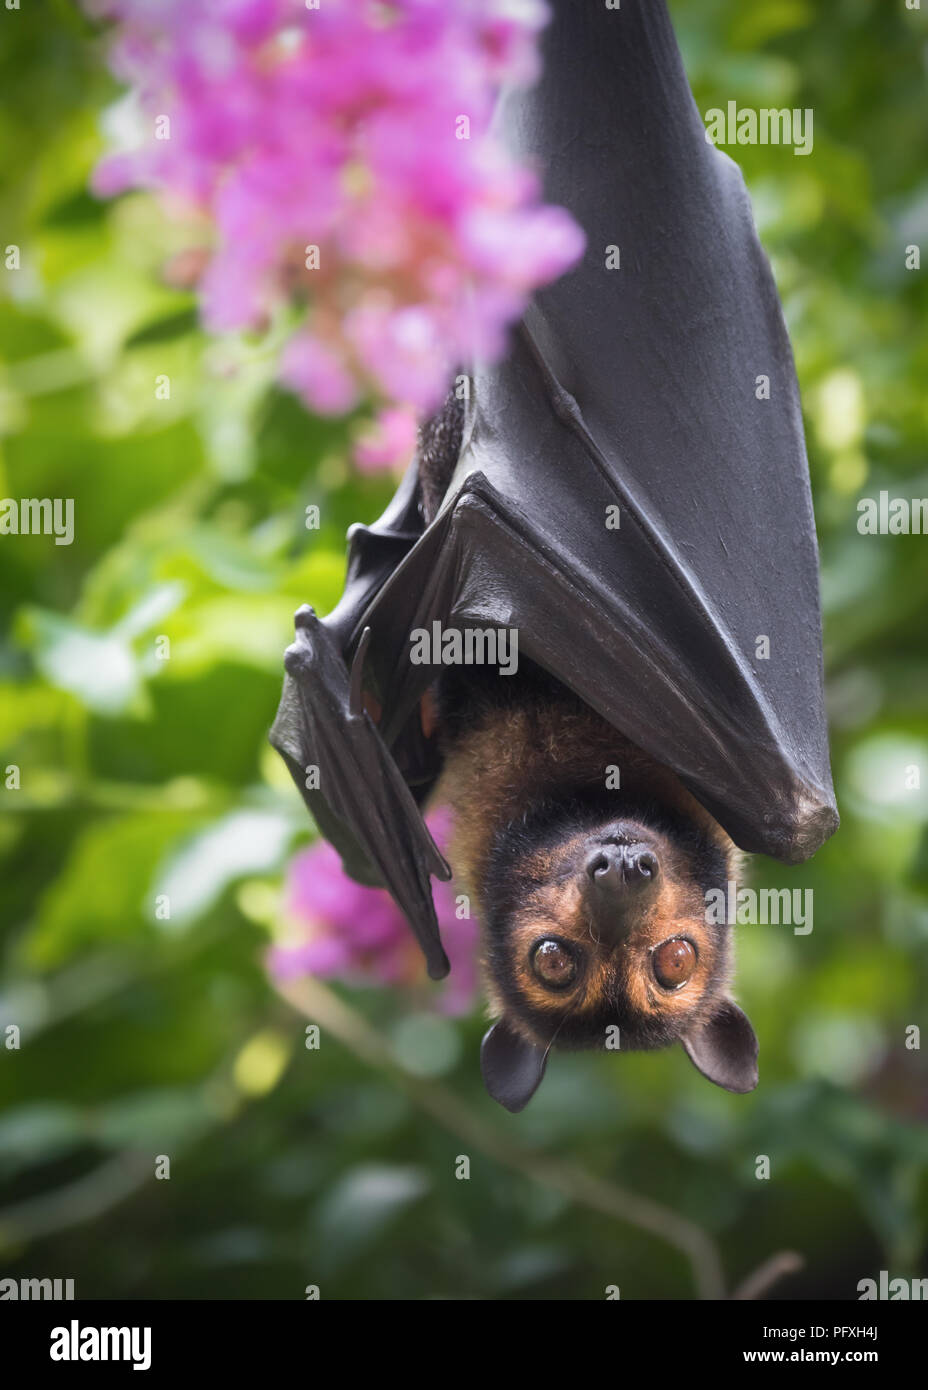 A Spectacled Flying Fox poses with some crepe myrtle at a wildlife rescue centre in Kuranda, Queensland, Australia. Stock Photo